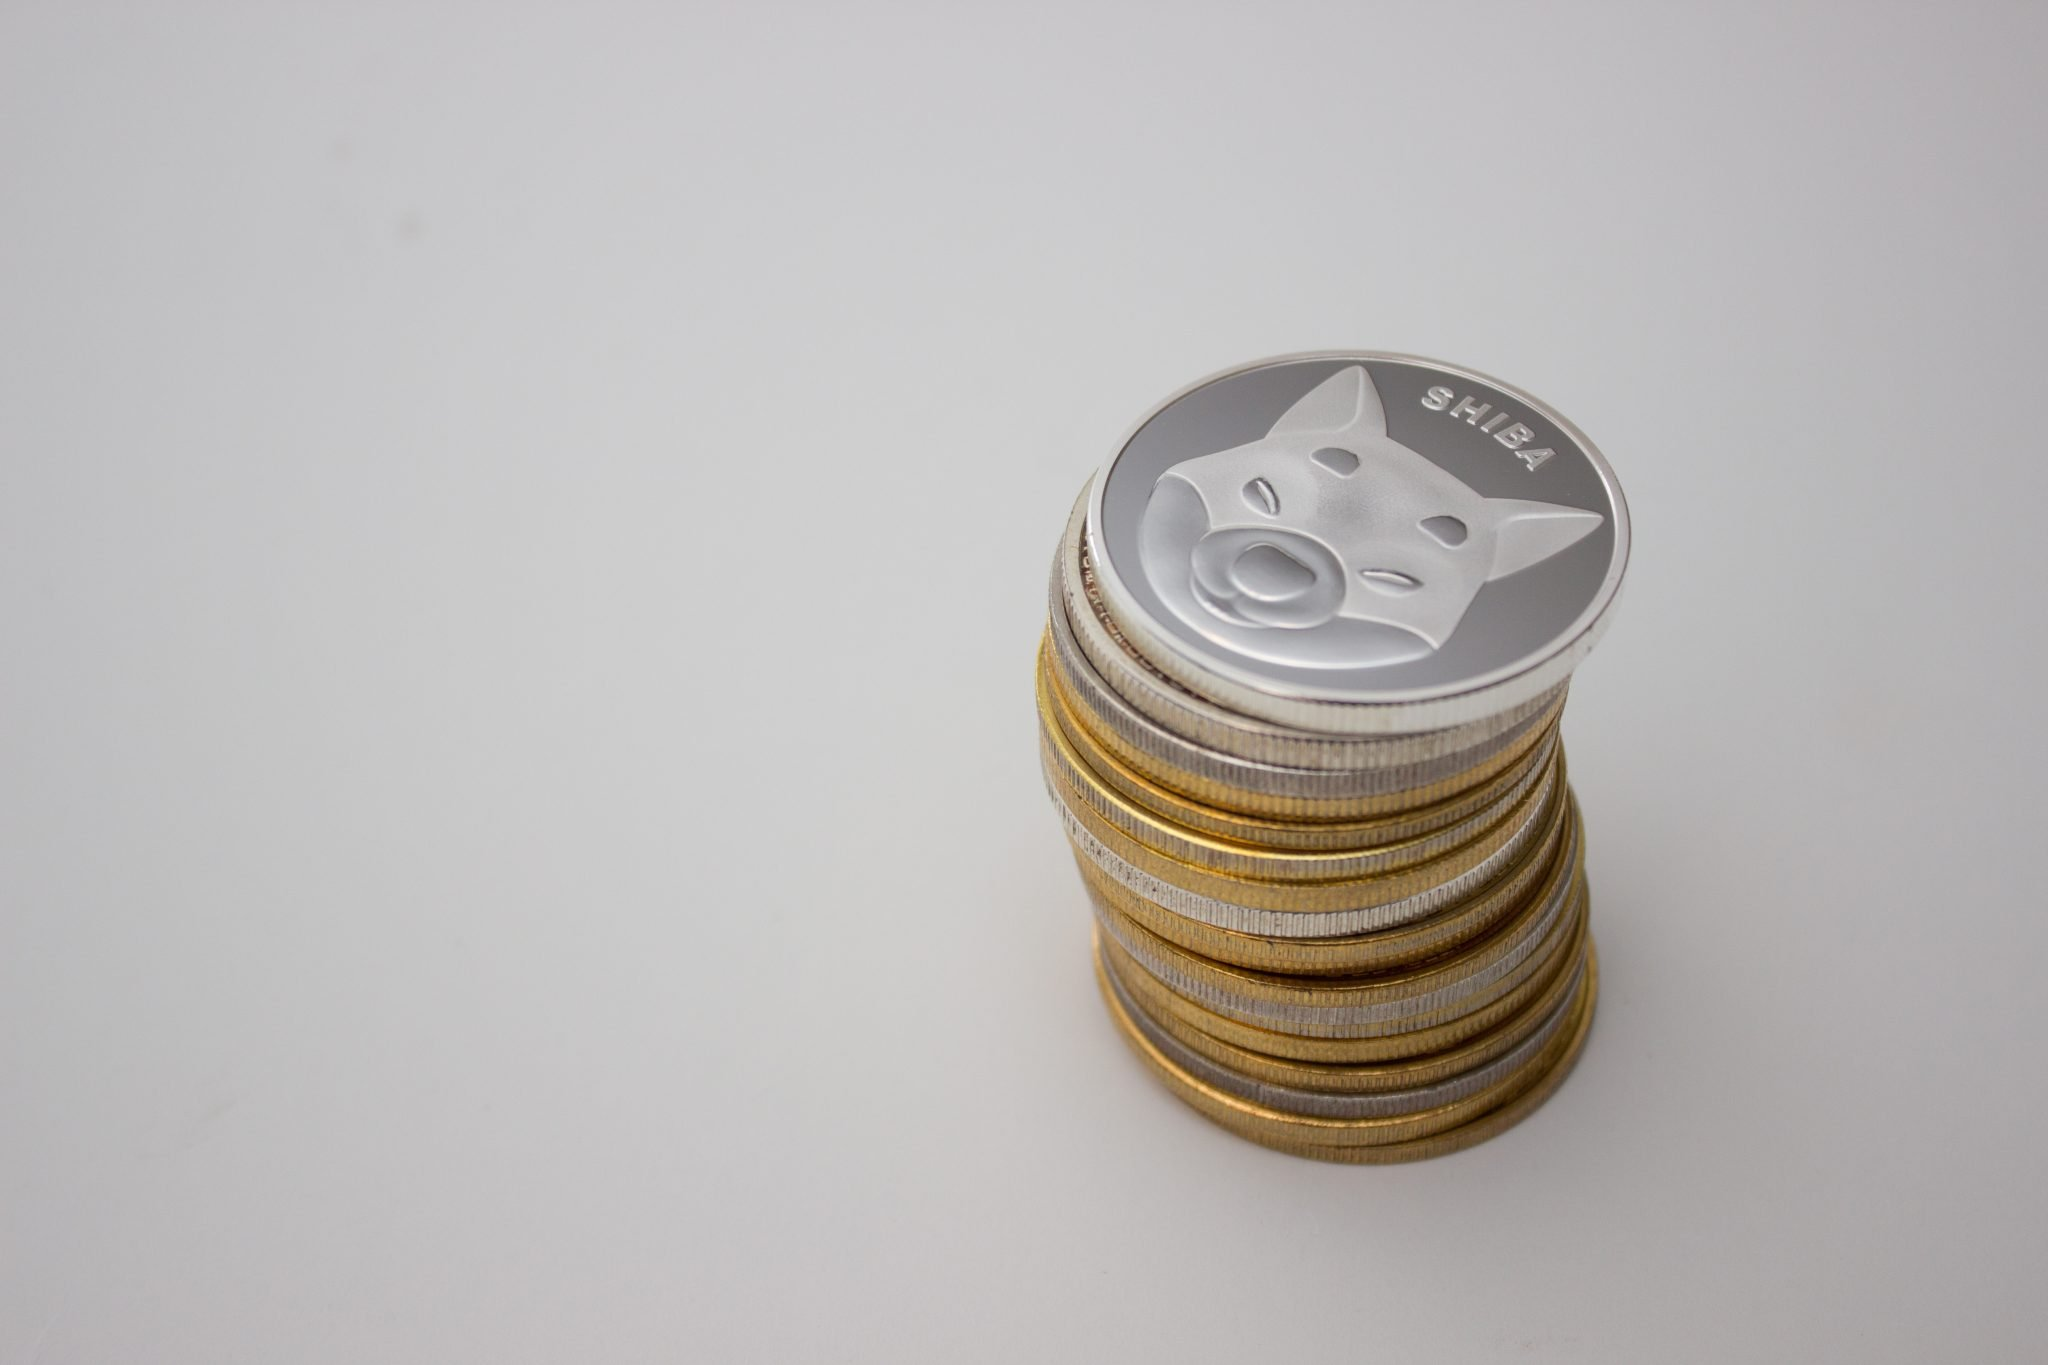 Stack of shiba INU coins over white background